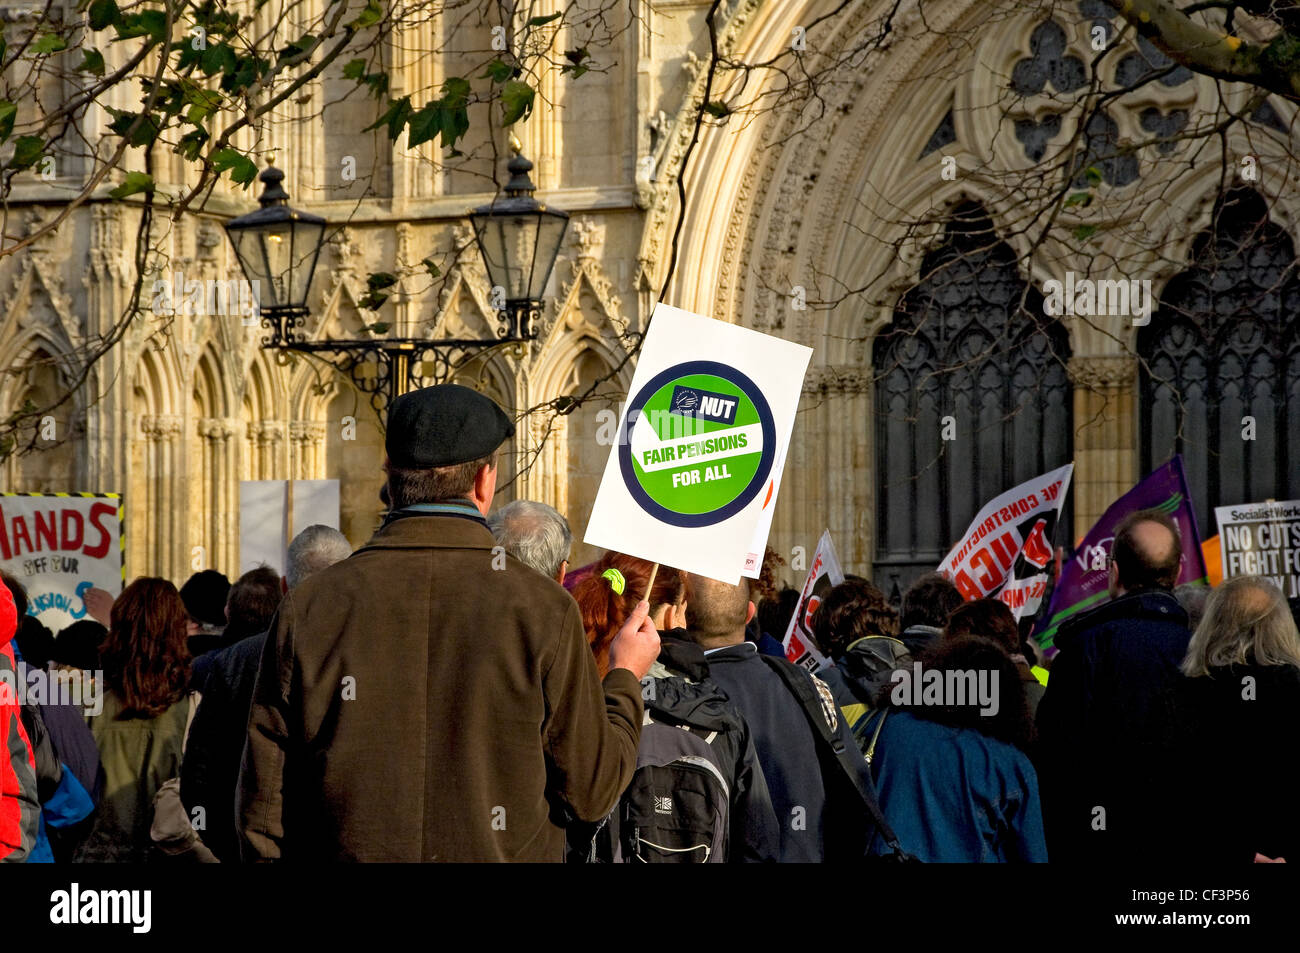 Public sector workers demonstrating against pension reforms outside the York Minster. - Stock Image